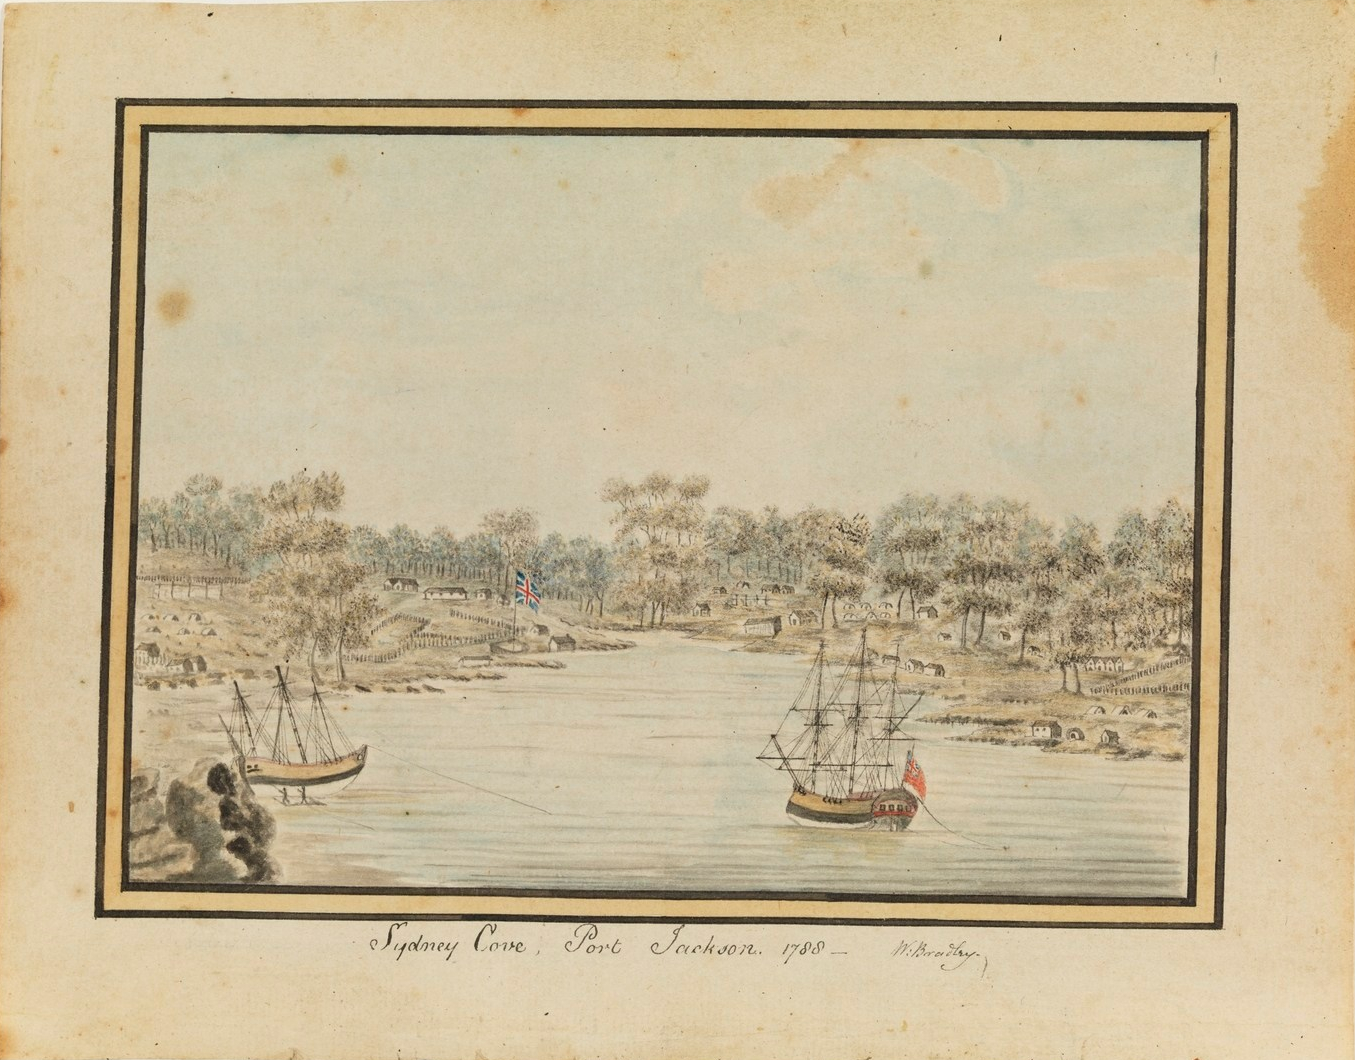 William Bradley, Sydney Cove, Port Jackson, 1788, First Fleet, A Voyage to New South Wales Journal.